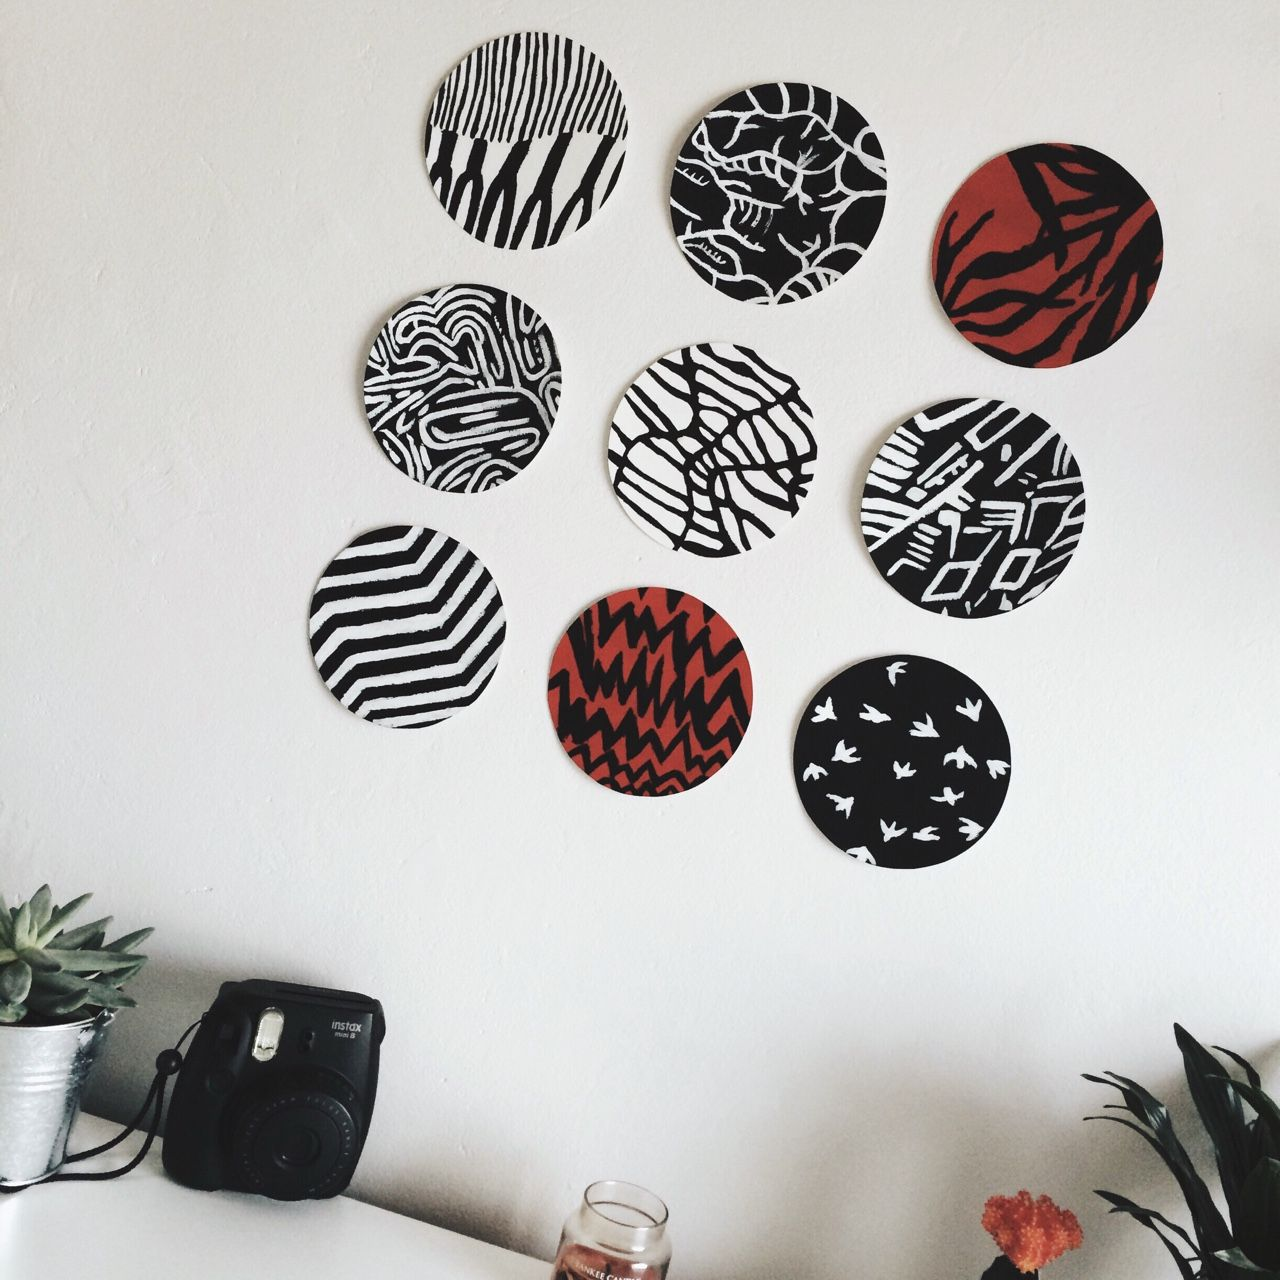 decorate your wall like this if you are a fan of twenty one pilots decorate your wall like this if you are a fan of twenty one pilots album